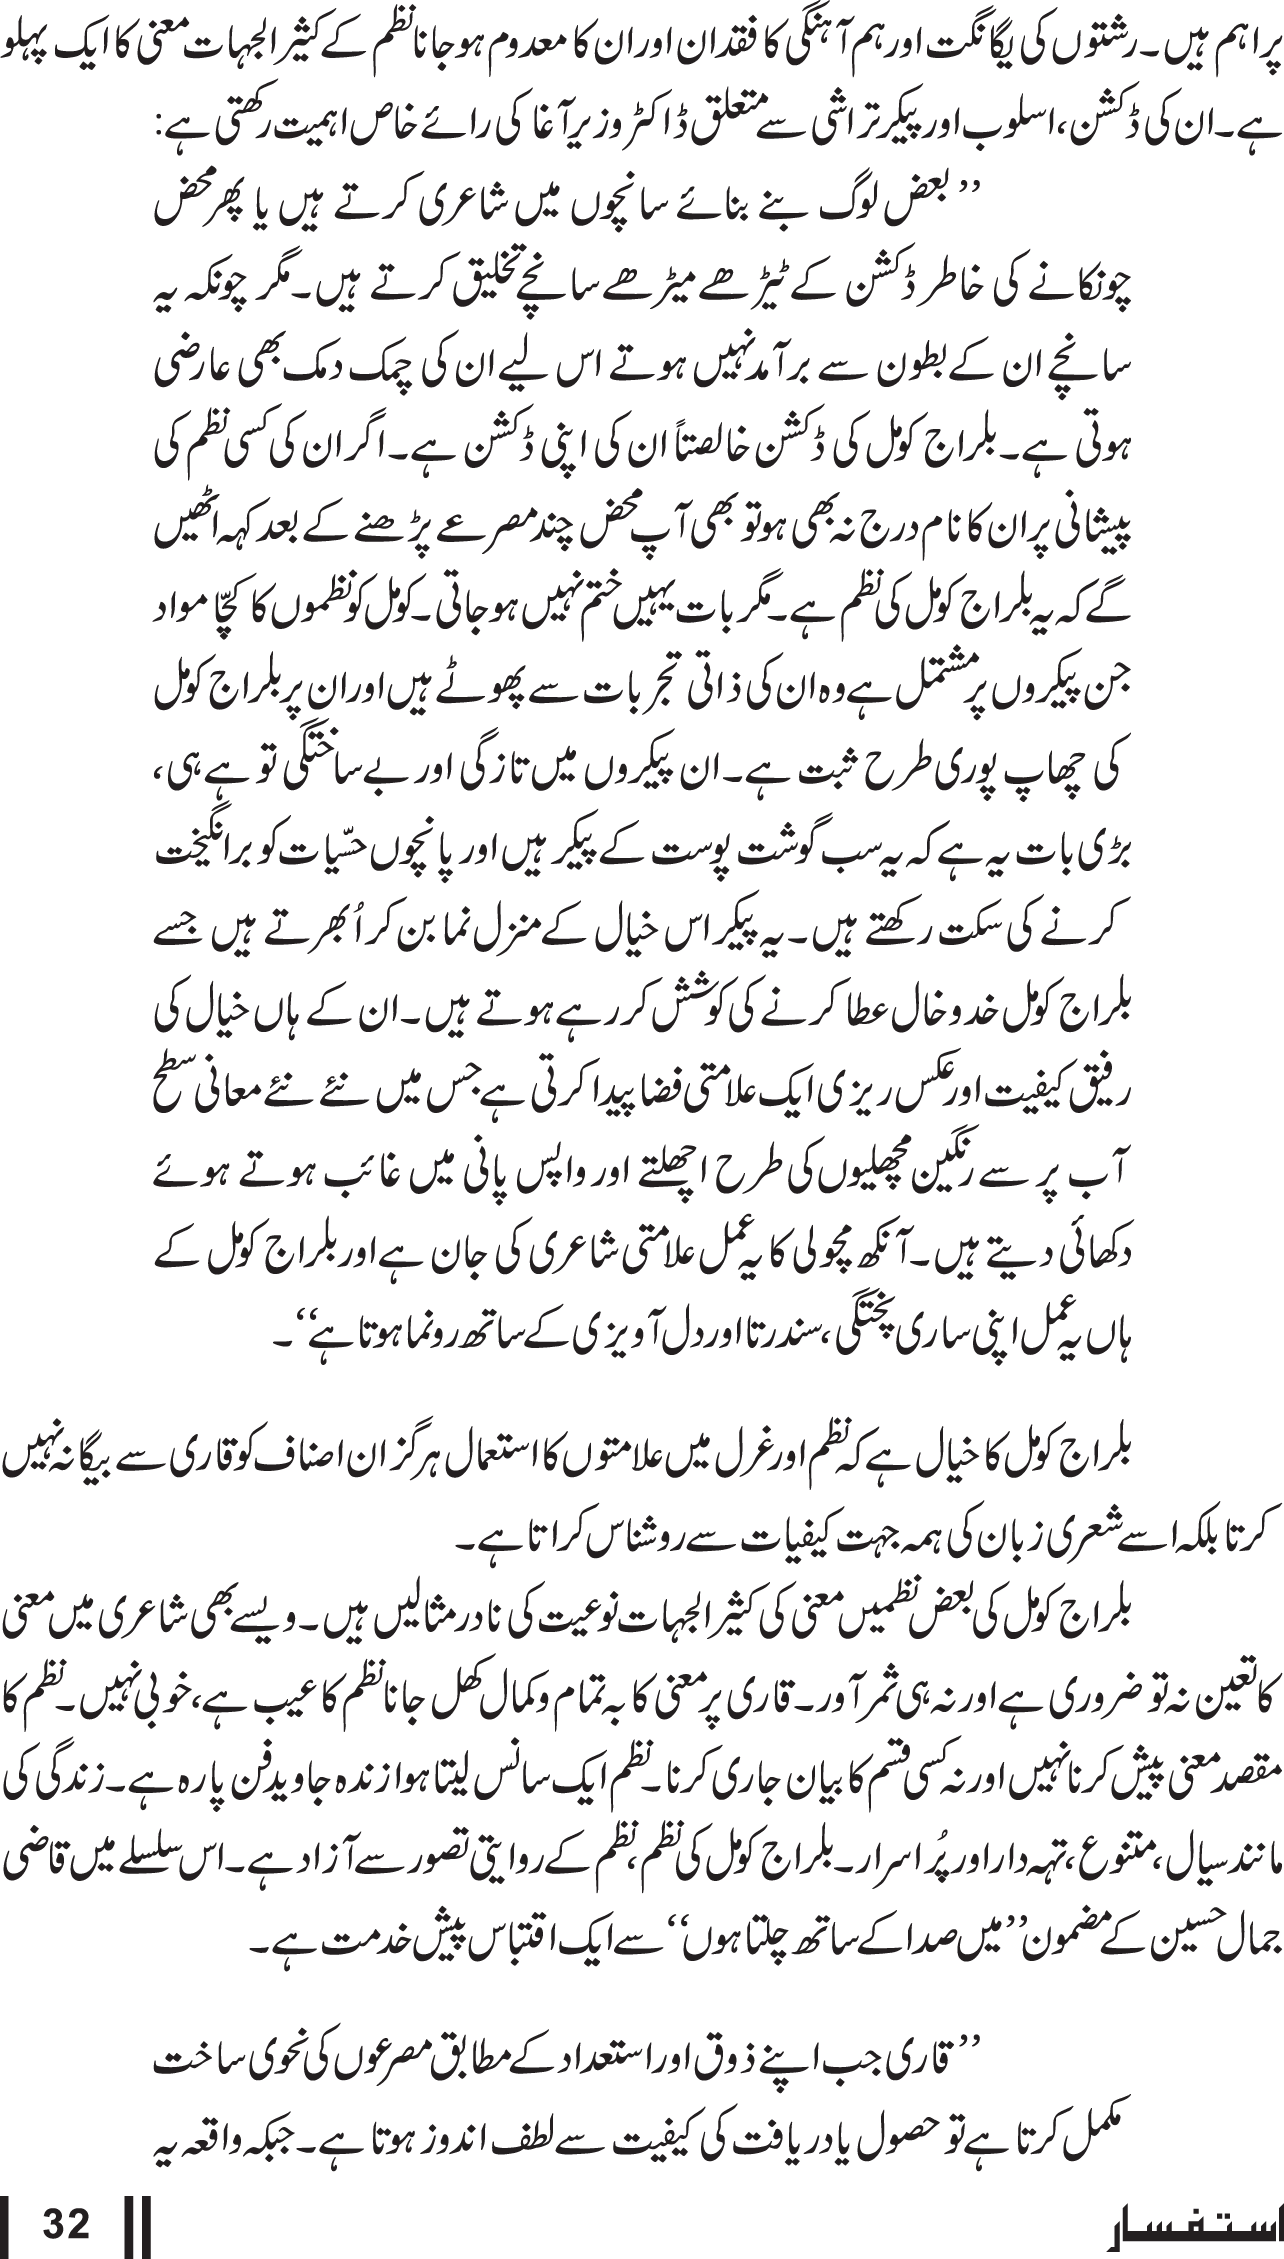 Second_Issue-32